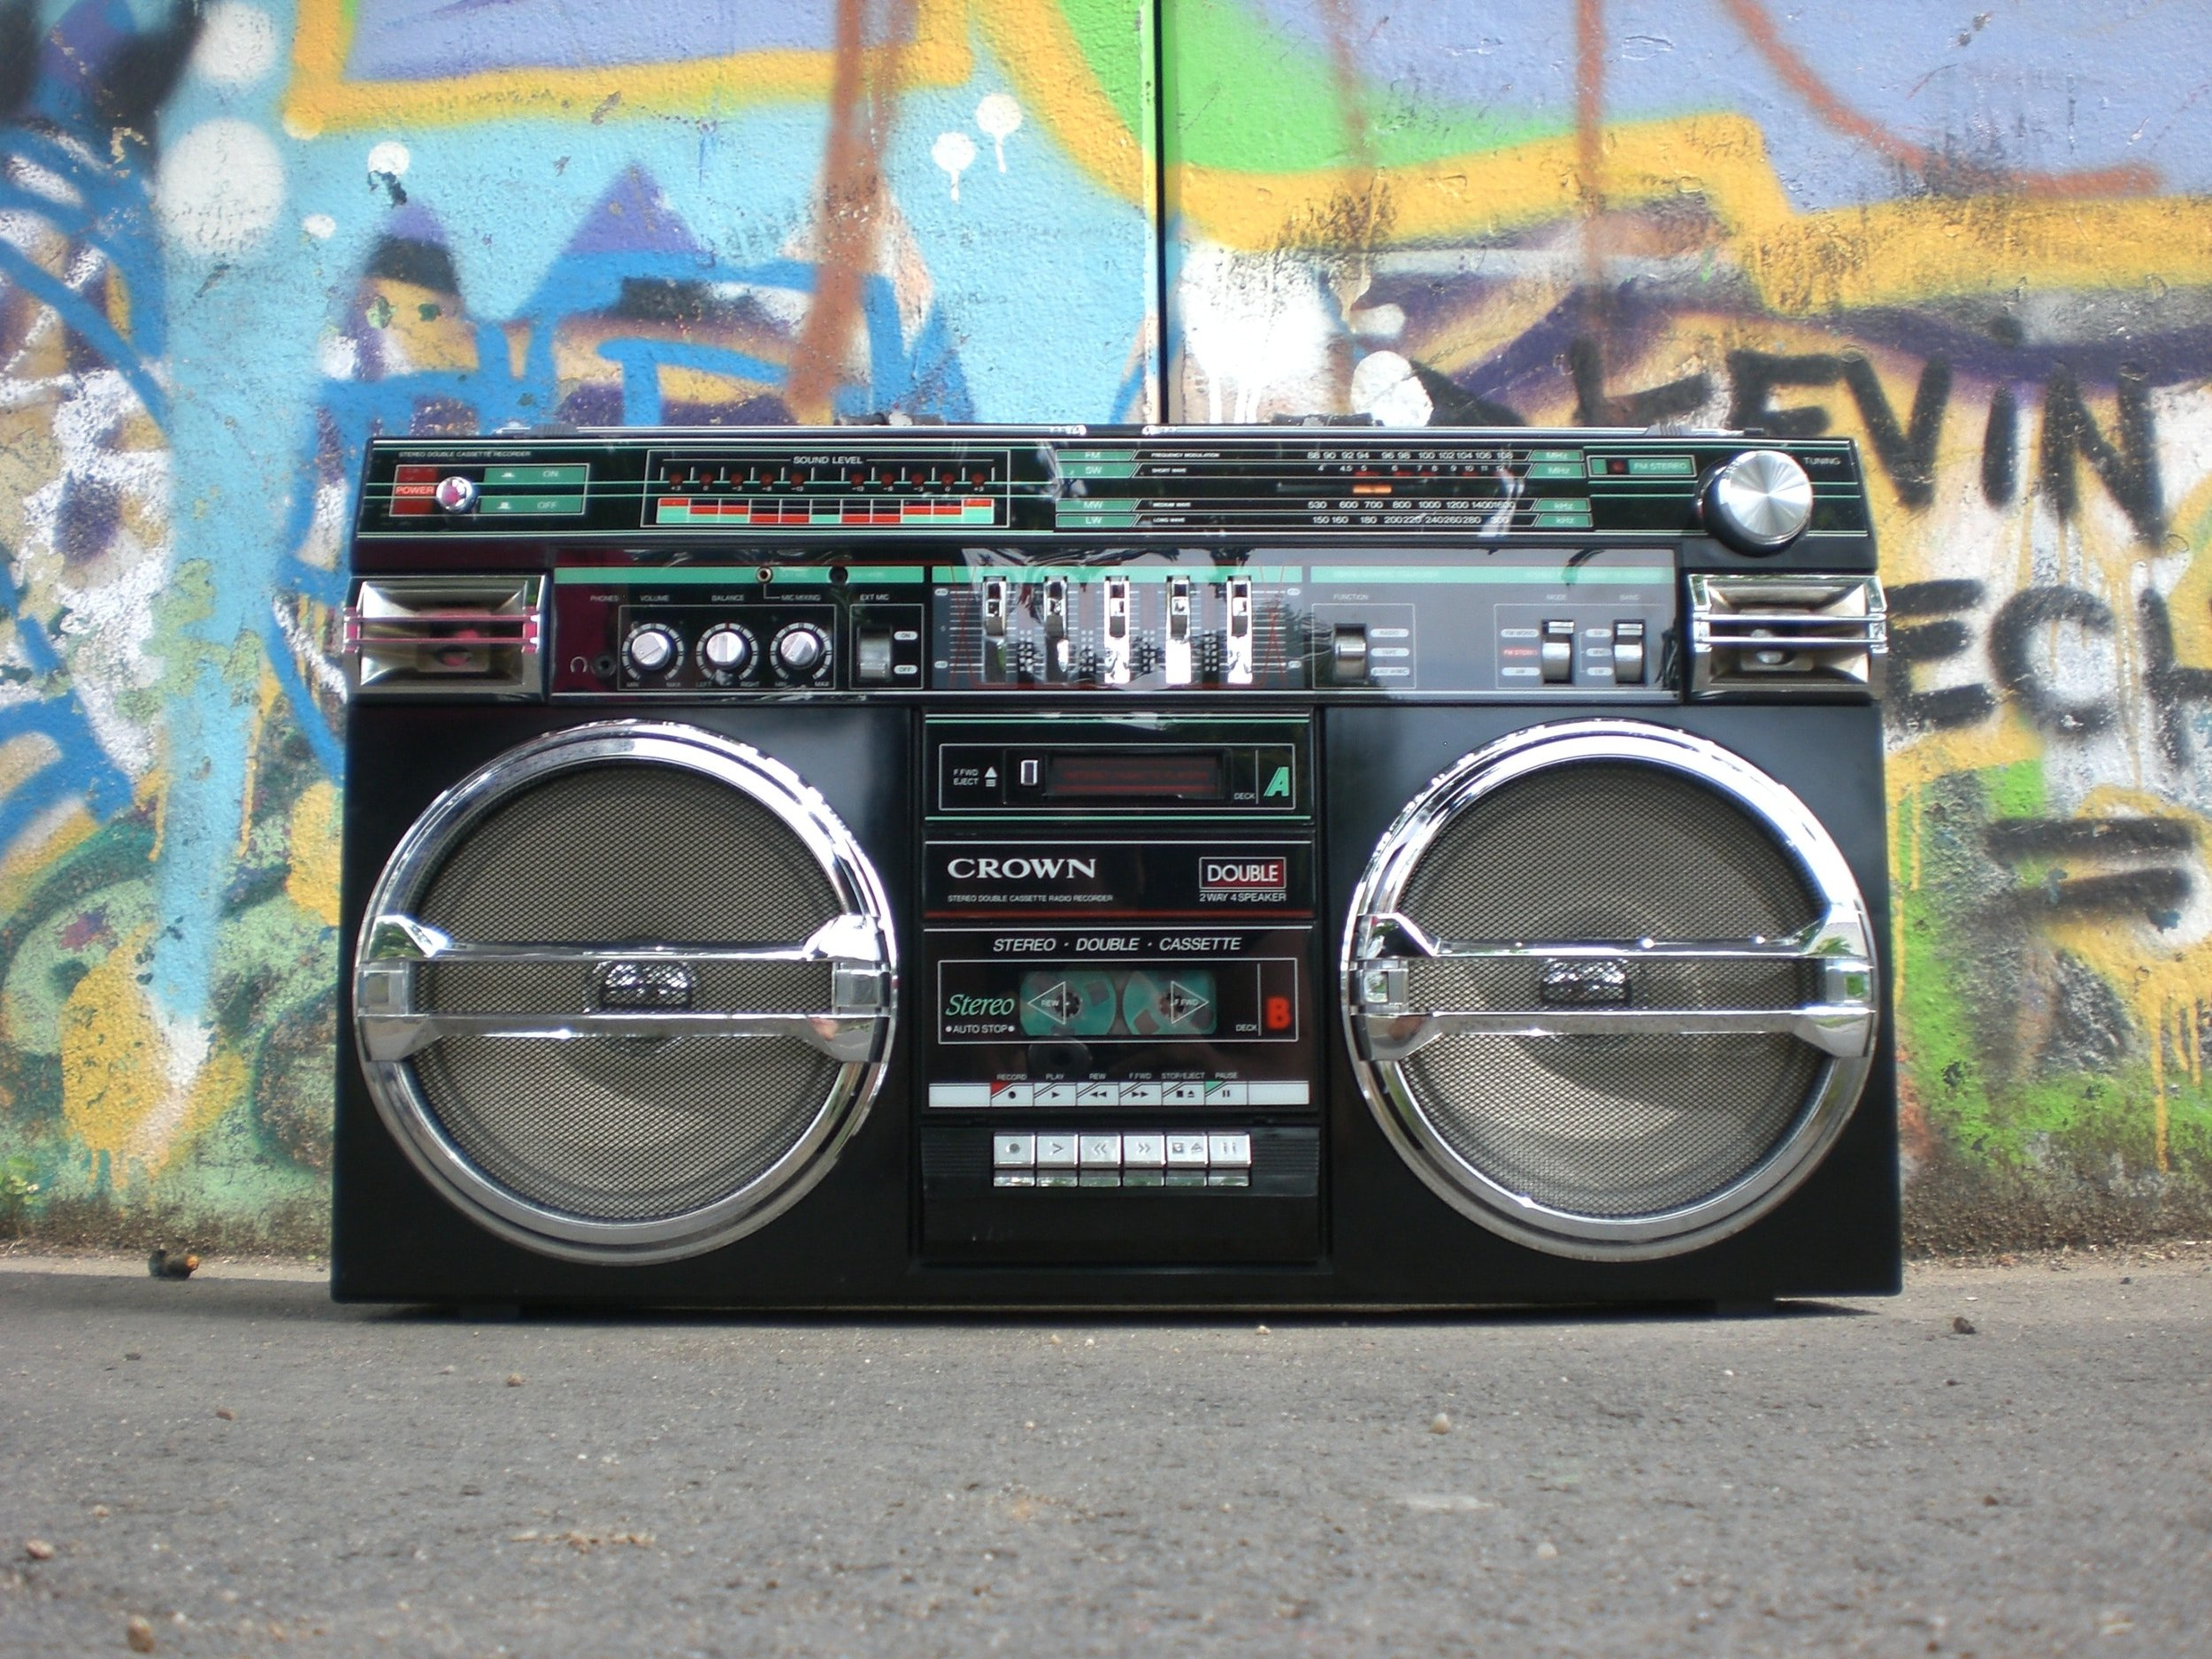 analogue-antique-boombox-159613.jpg